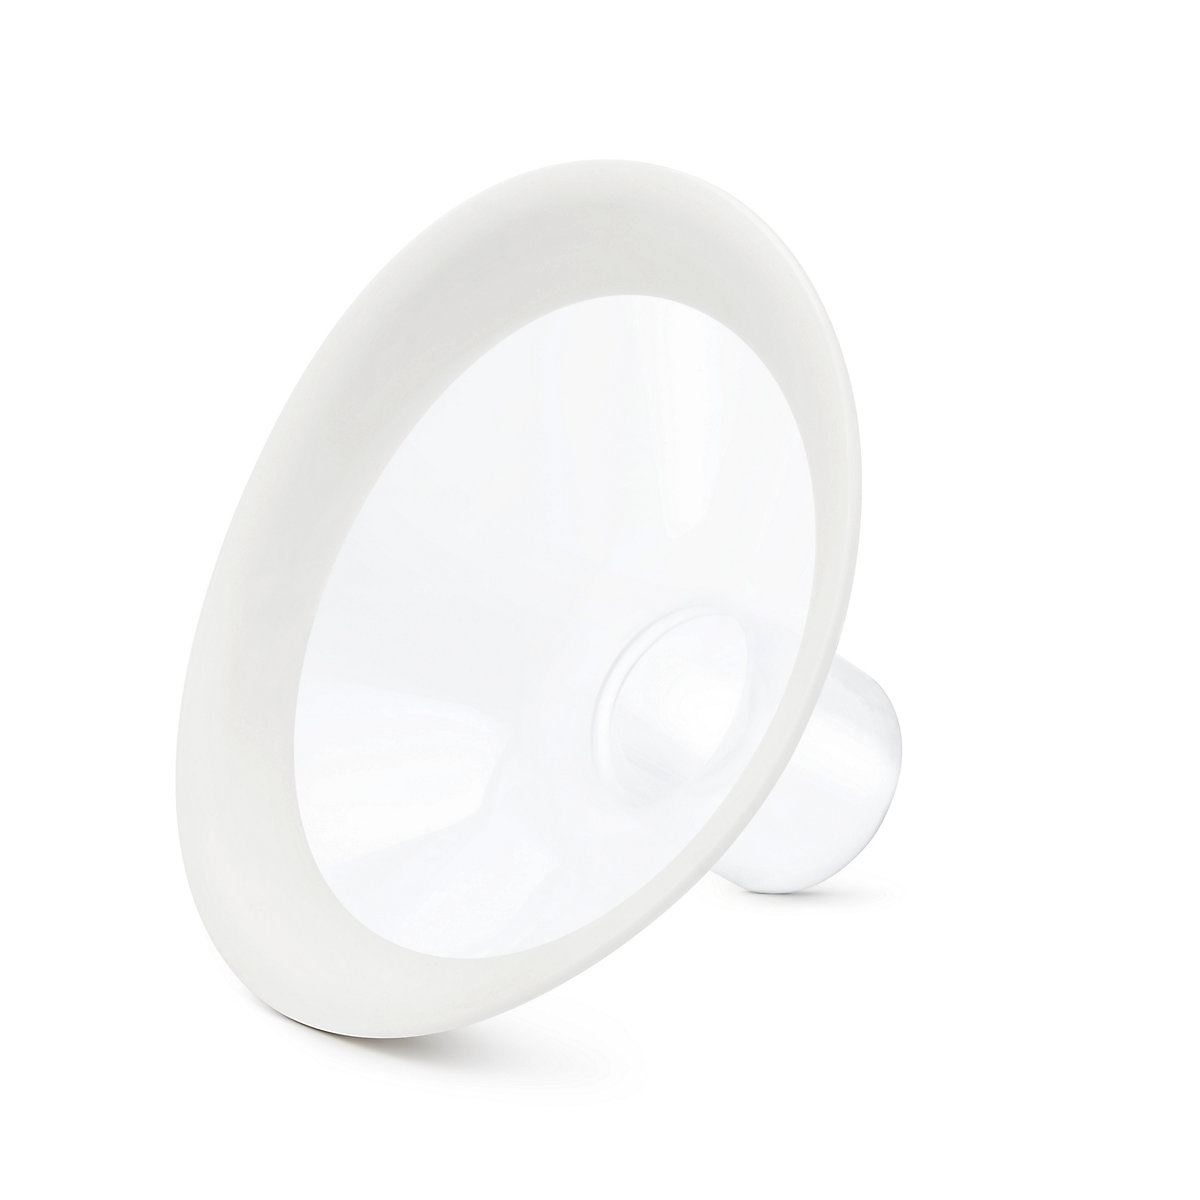 Medela personalfit flex breast shield - 30mm